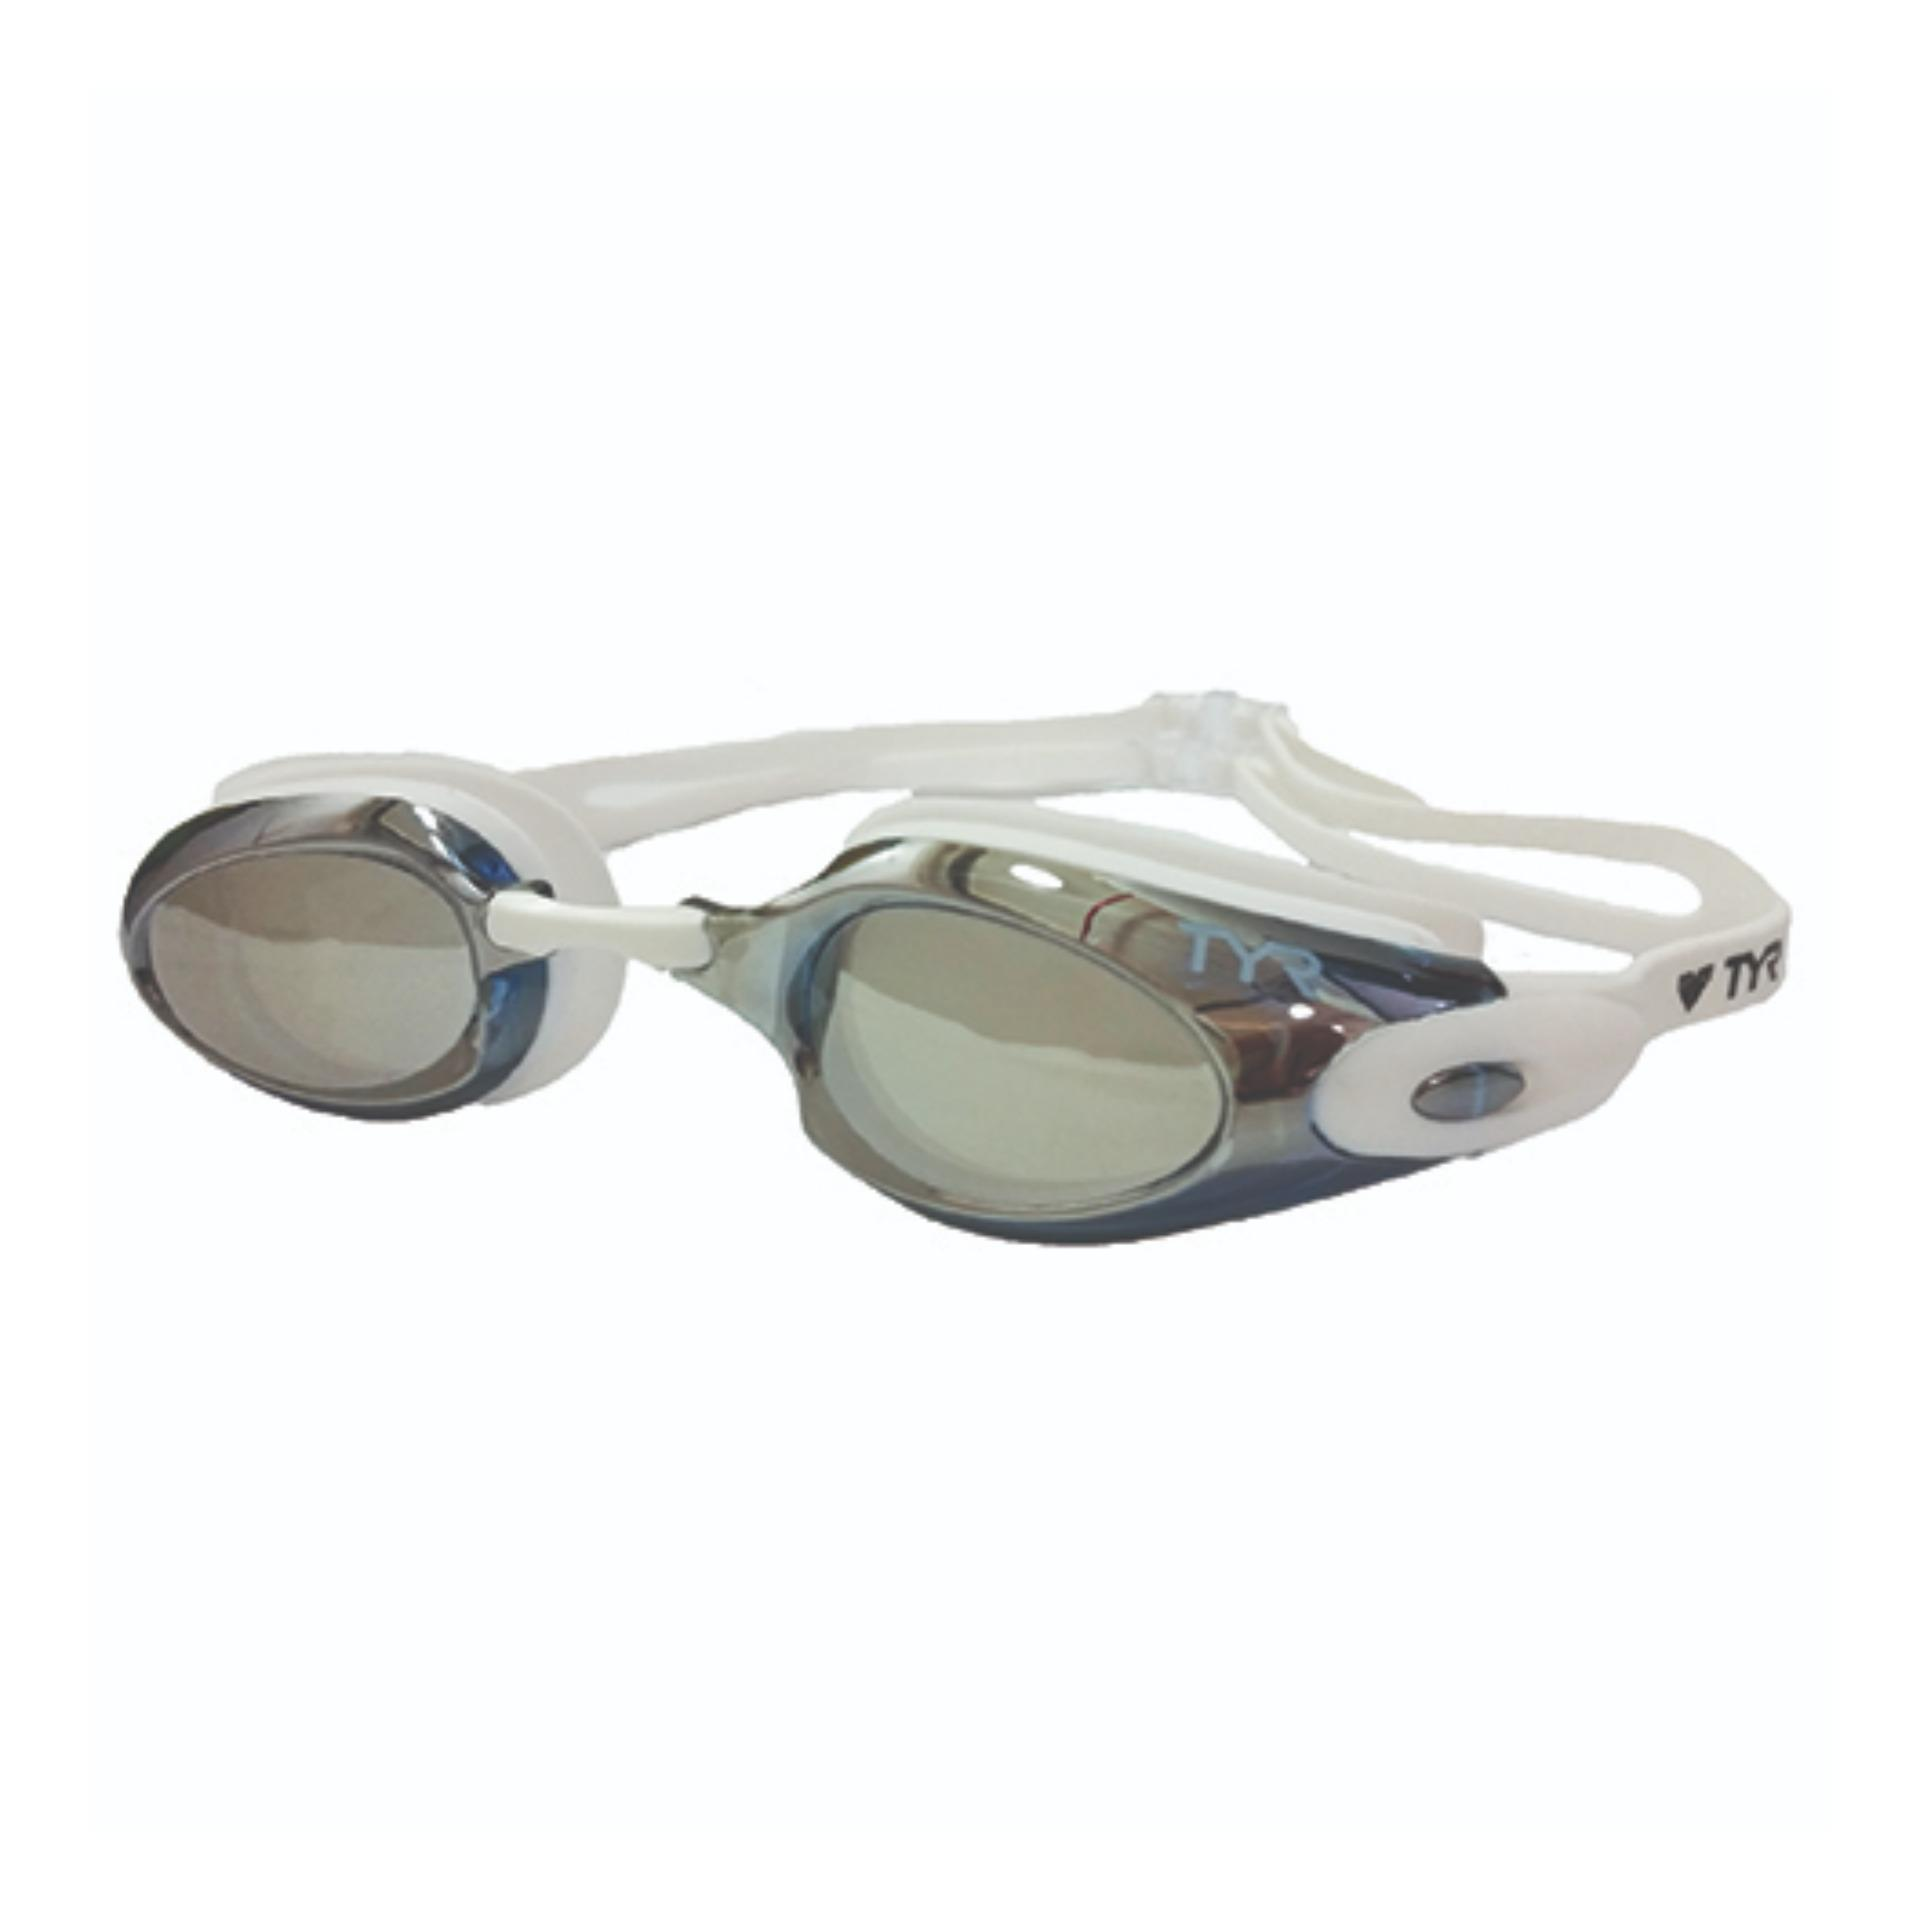 Tyr Aquaflex Evo Metallised Goggles Shopping